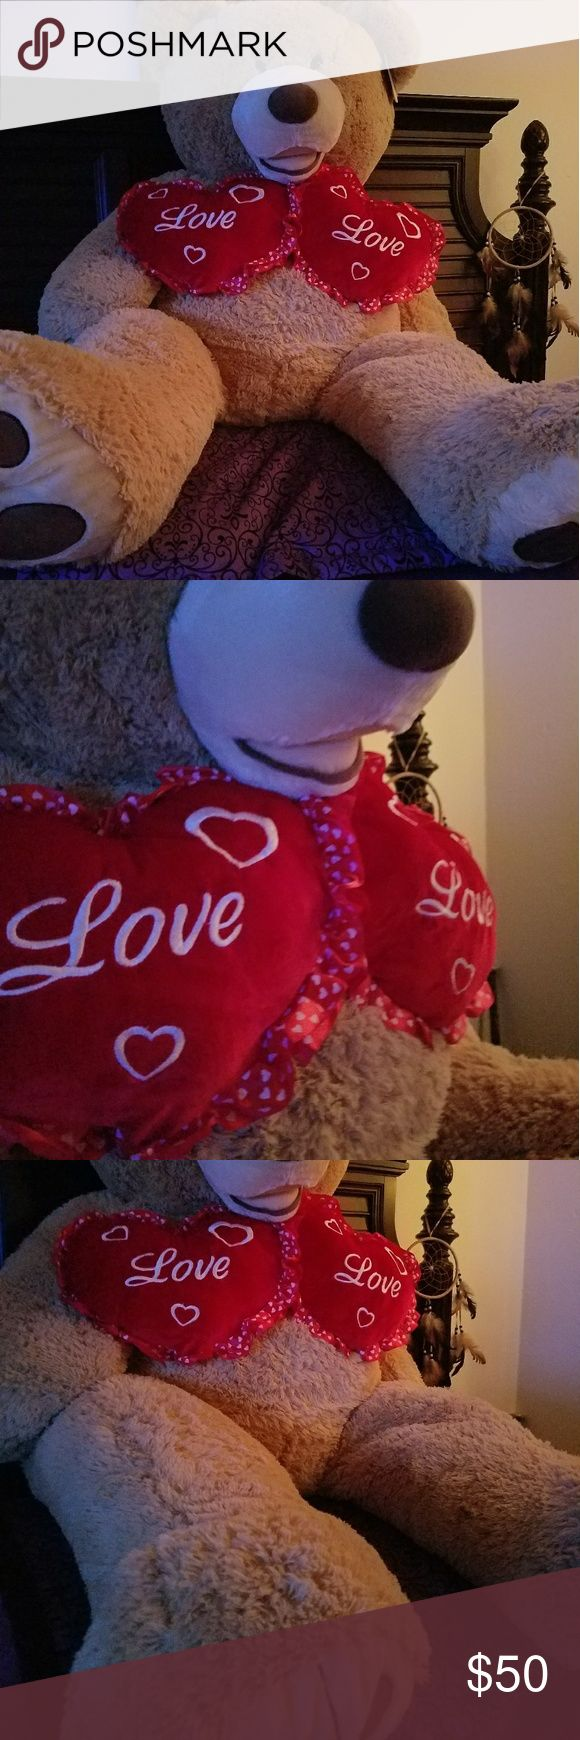 "53"" Plush Teddy Bear 🐻 Plush Teddy Bear 🐻 so so cute but takes up space in my house. Needs a new home. Please make someone happy ❤ new with tags. Other"